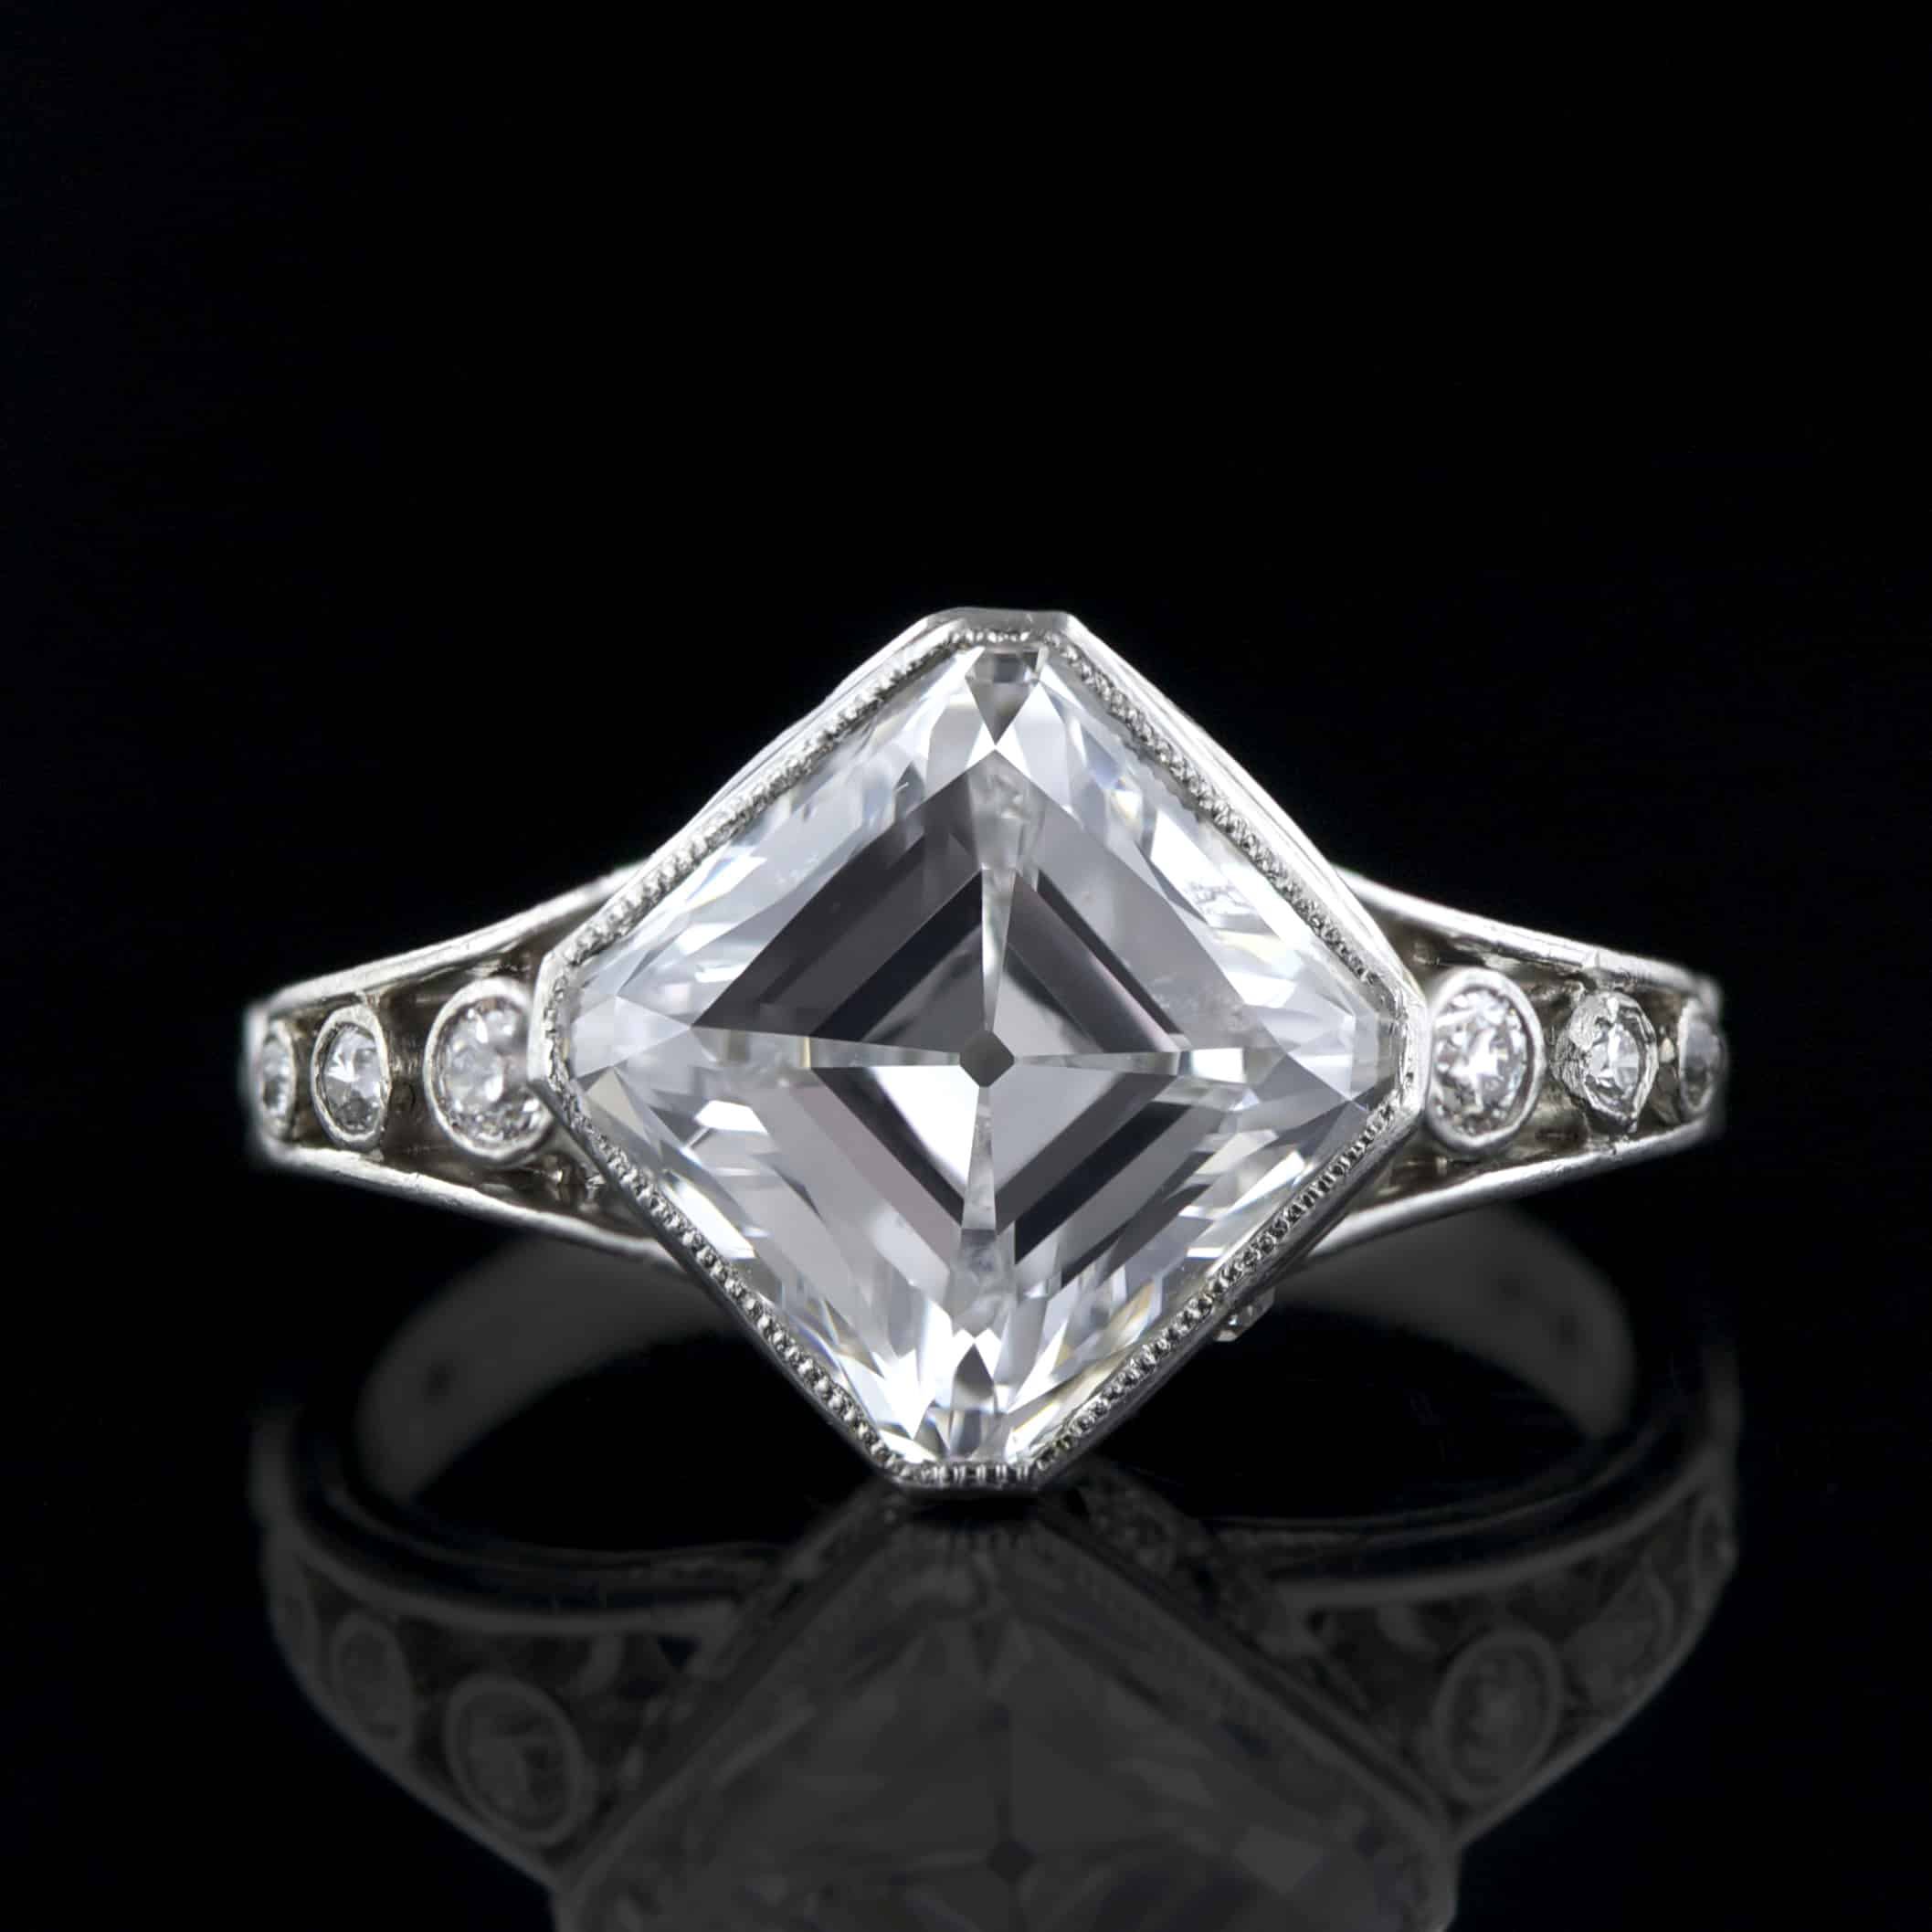 Asscher Cut D Flawless Golconda Diamond Ring.jpg